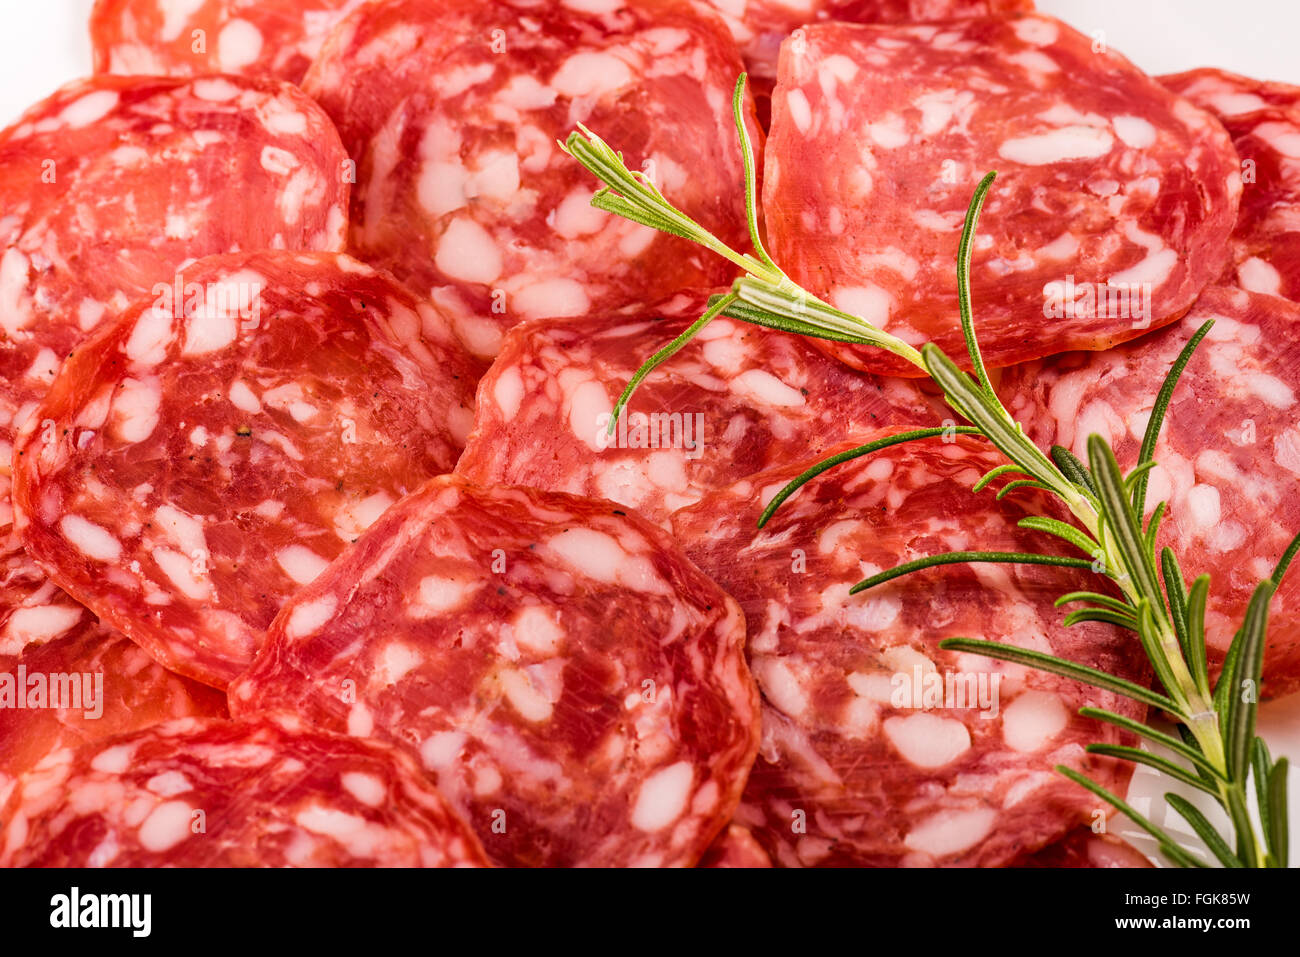 Italian salami with pepper, milan, bratwurst, finely chopped, rosemary, meat, pork, spicy, aroma, spice, tasty, - Stock Image